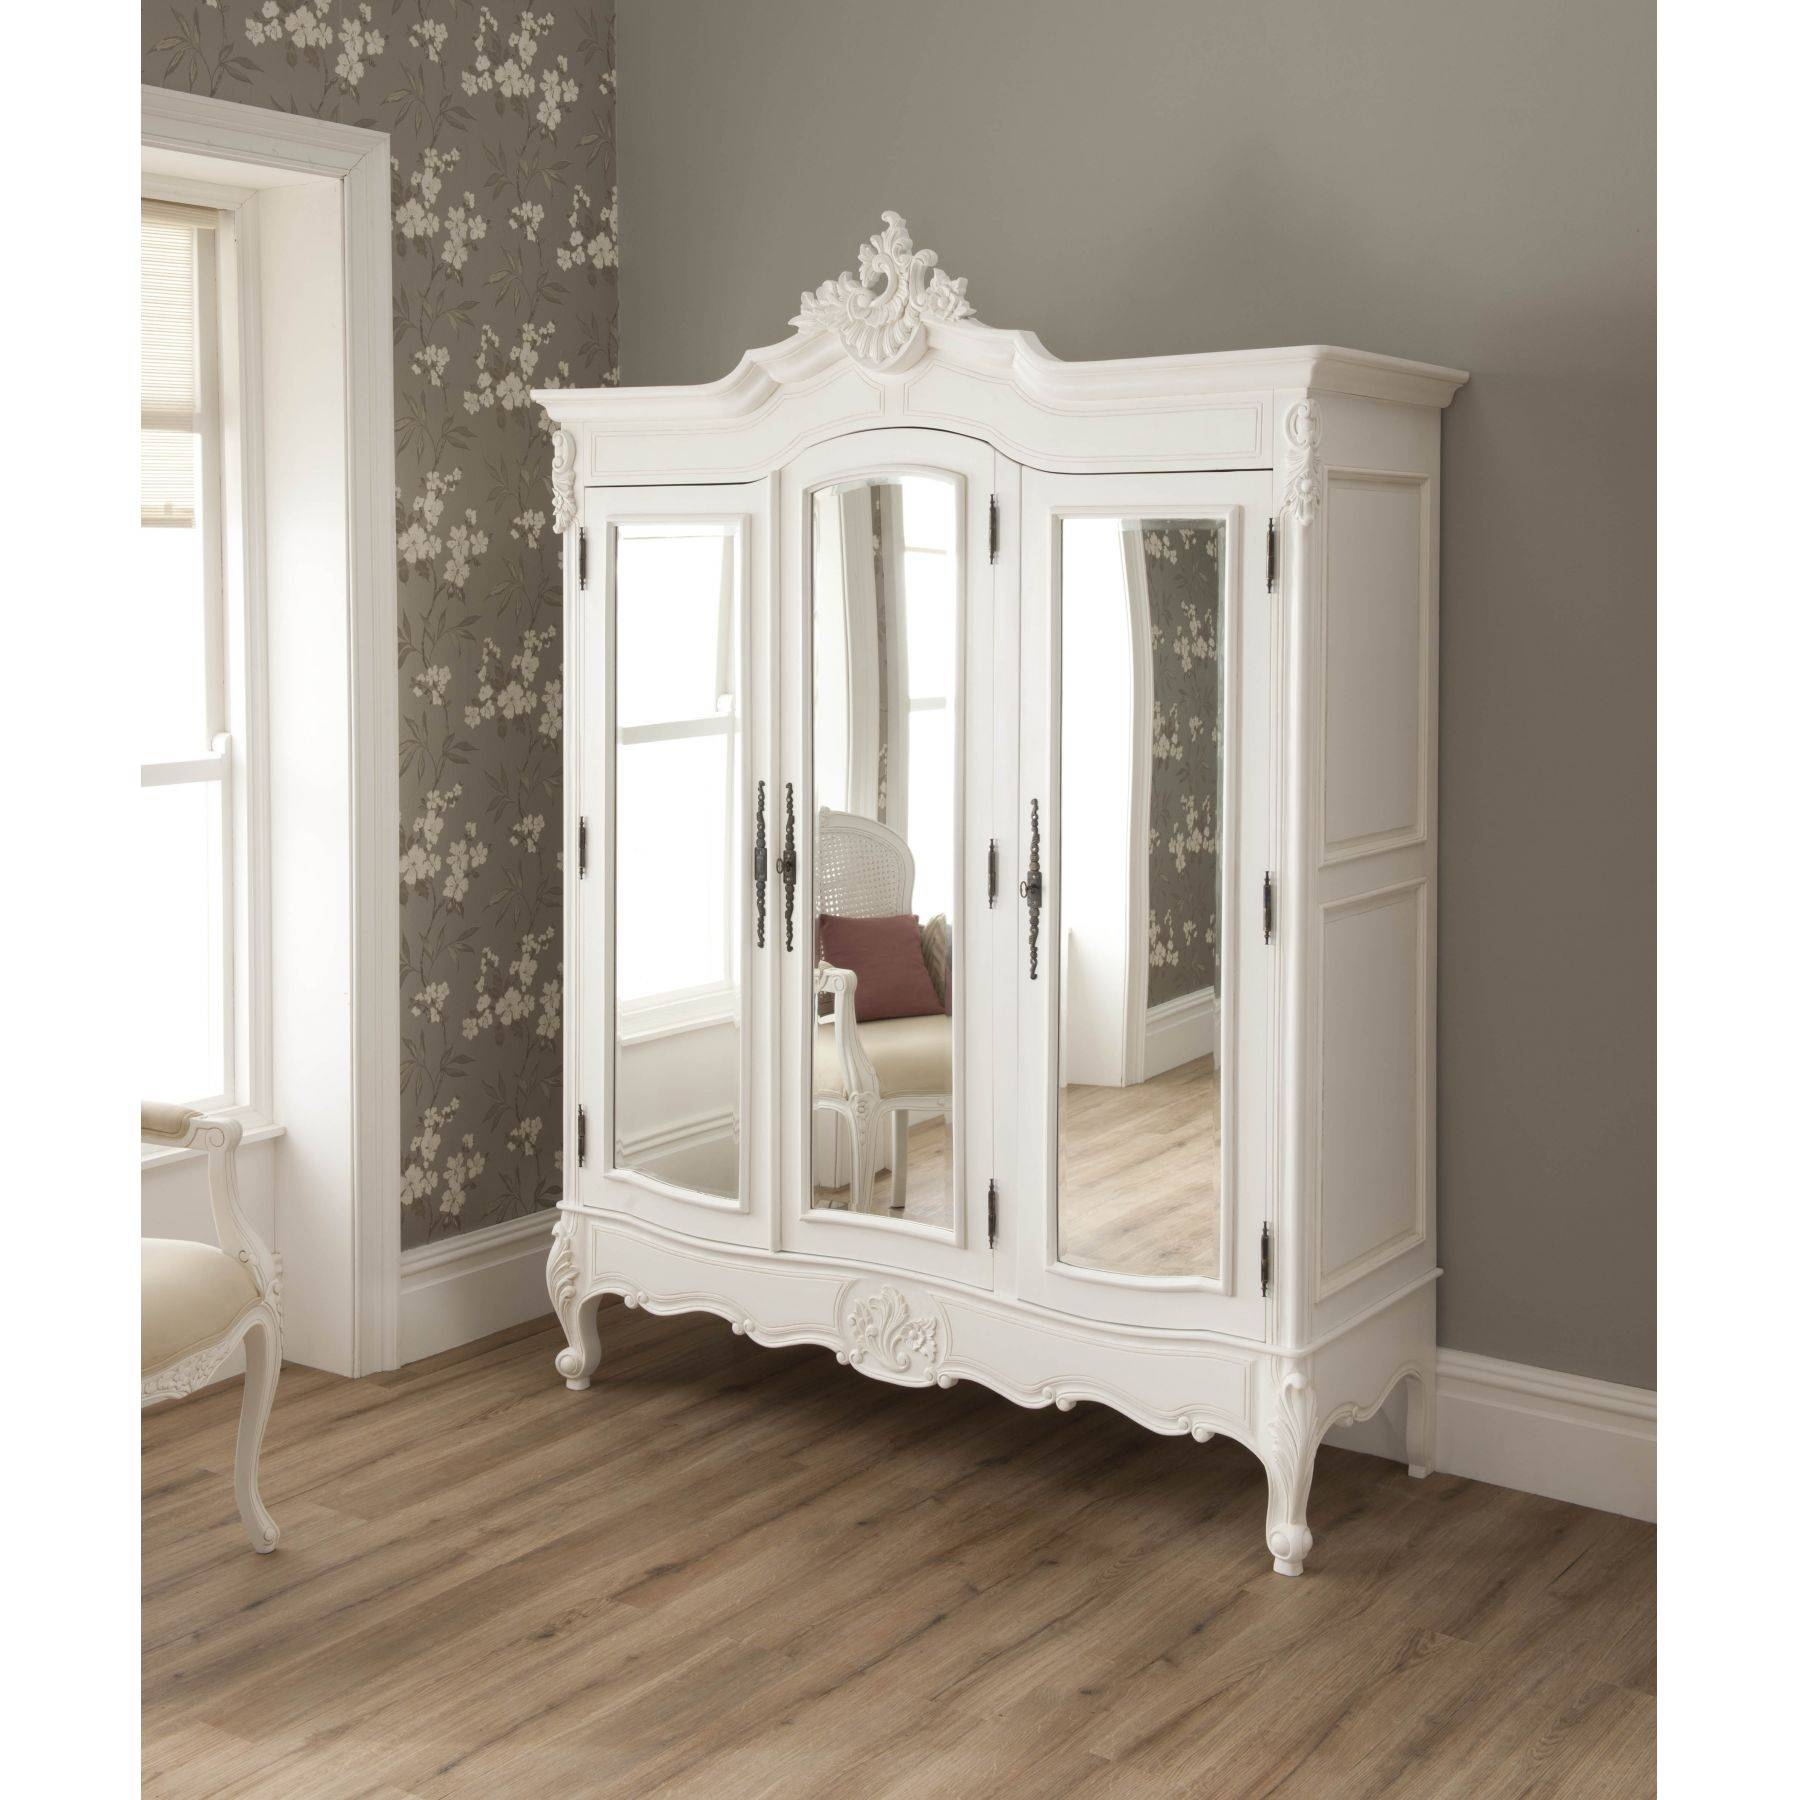 La Rochelle Shabby Chic Antique Style Wardrobe | Shabby Chic Furniture with regard to White Antique Wardrobes (Image 11 of 15)